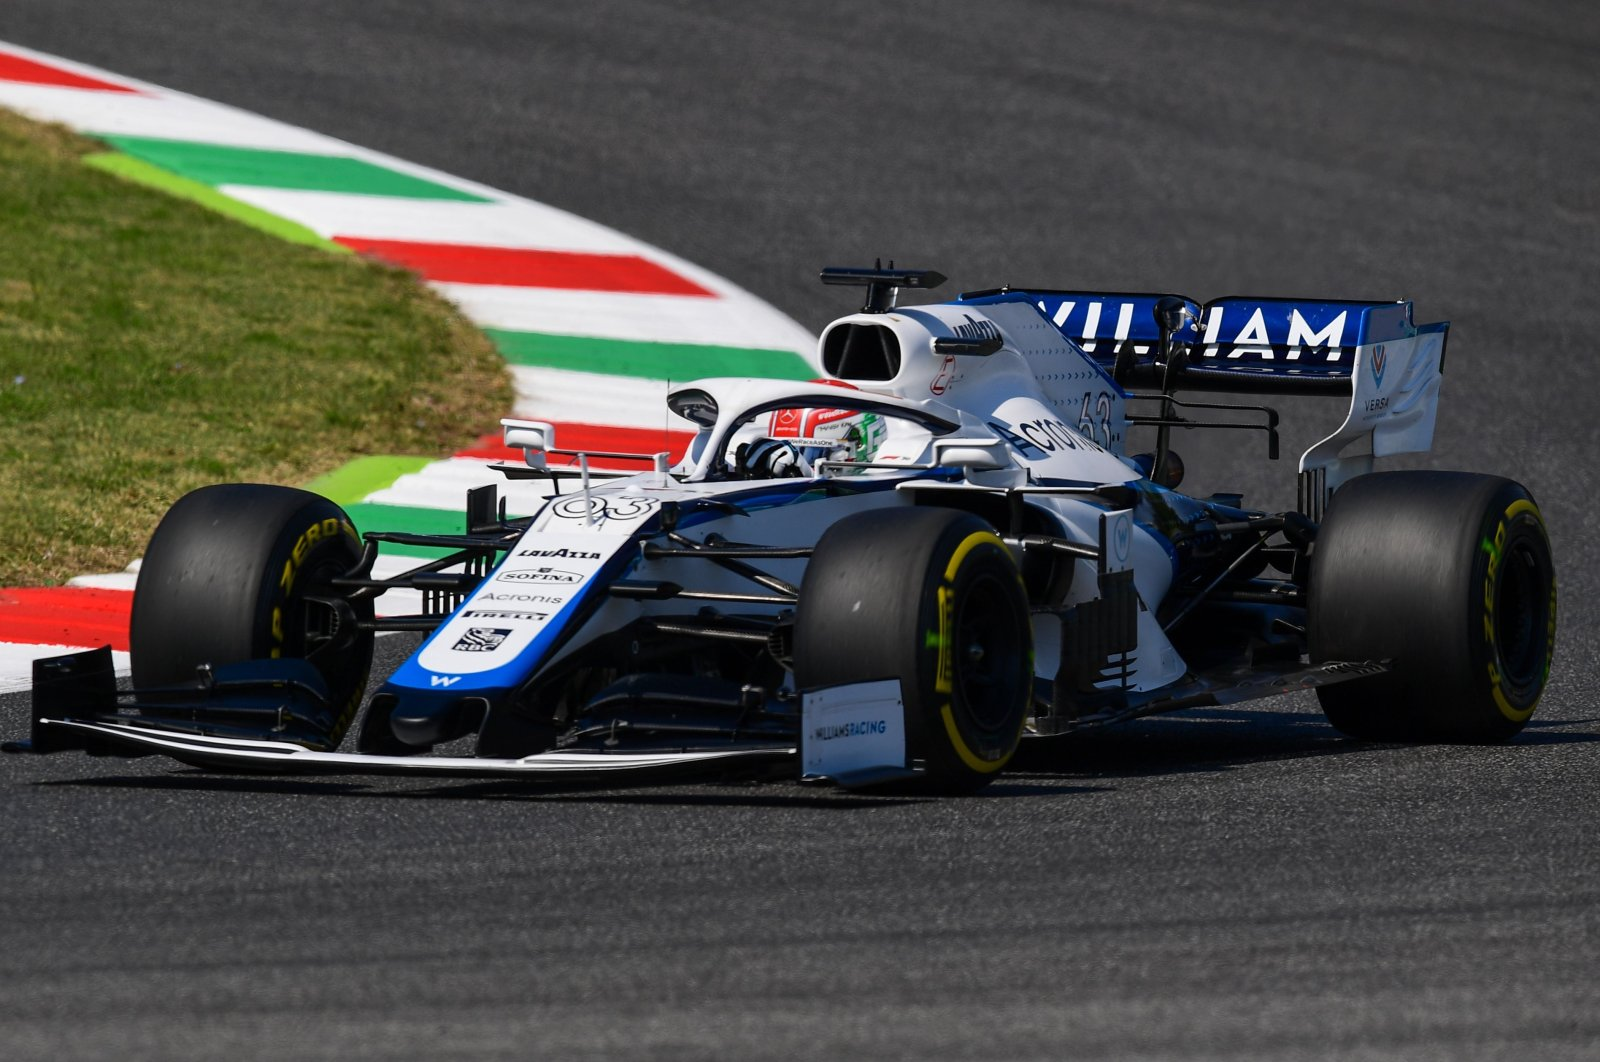 Williams driver George Russell during a practice session ahead of the Tuscan GP in Scarperia, Italy, Sept. 11, 2020. (AFP Photo)